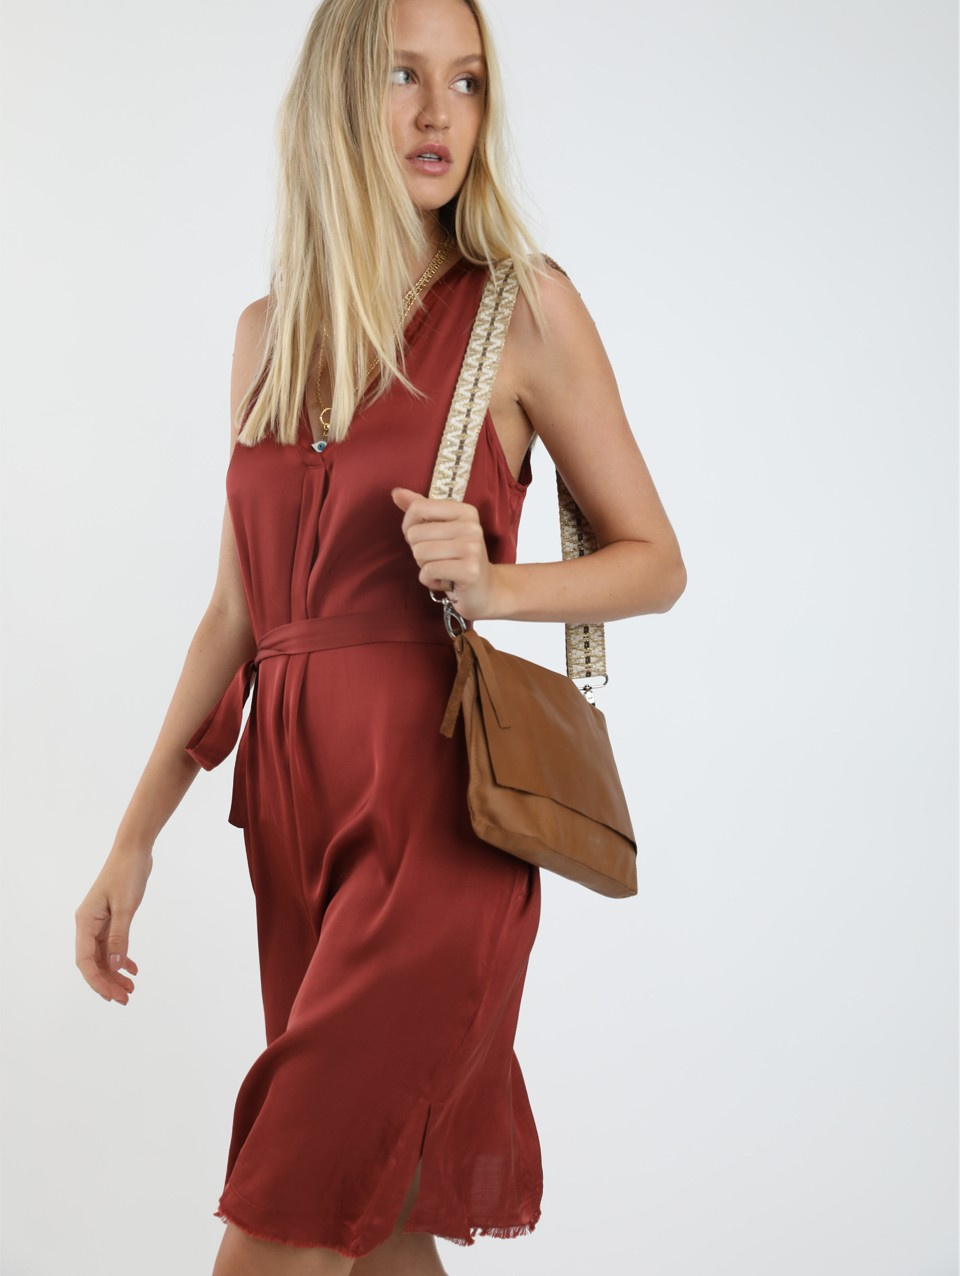 Nora Sleeveless Dress